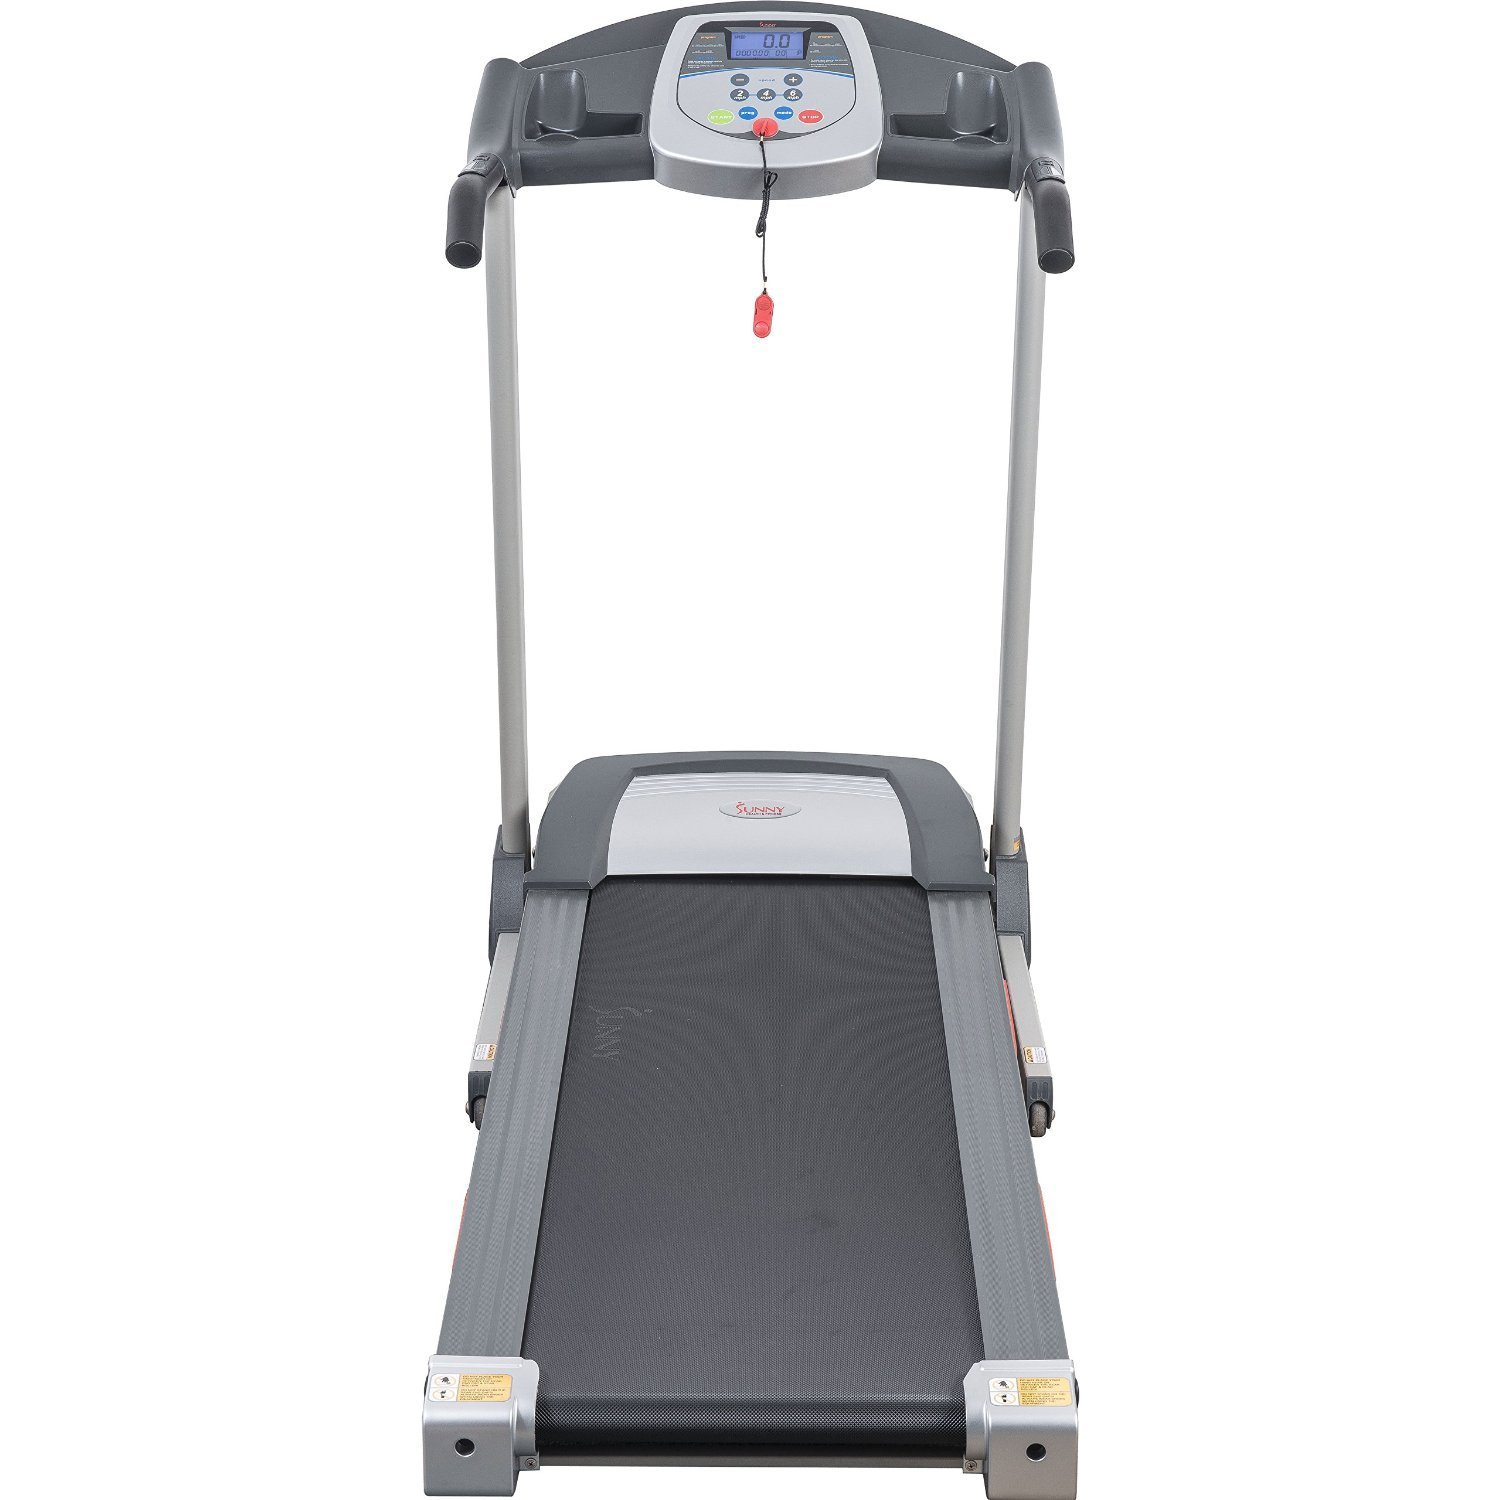 Sunny Health & Fitness SF-T7603 Electric Treadmill Review